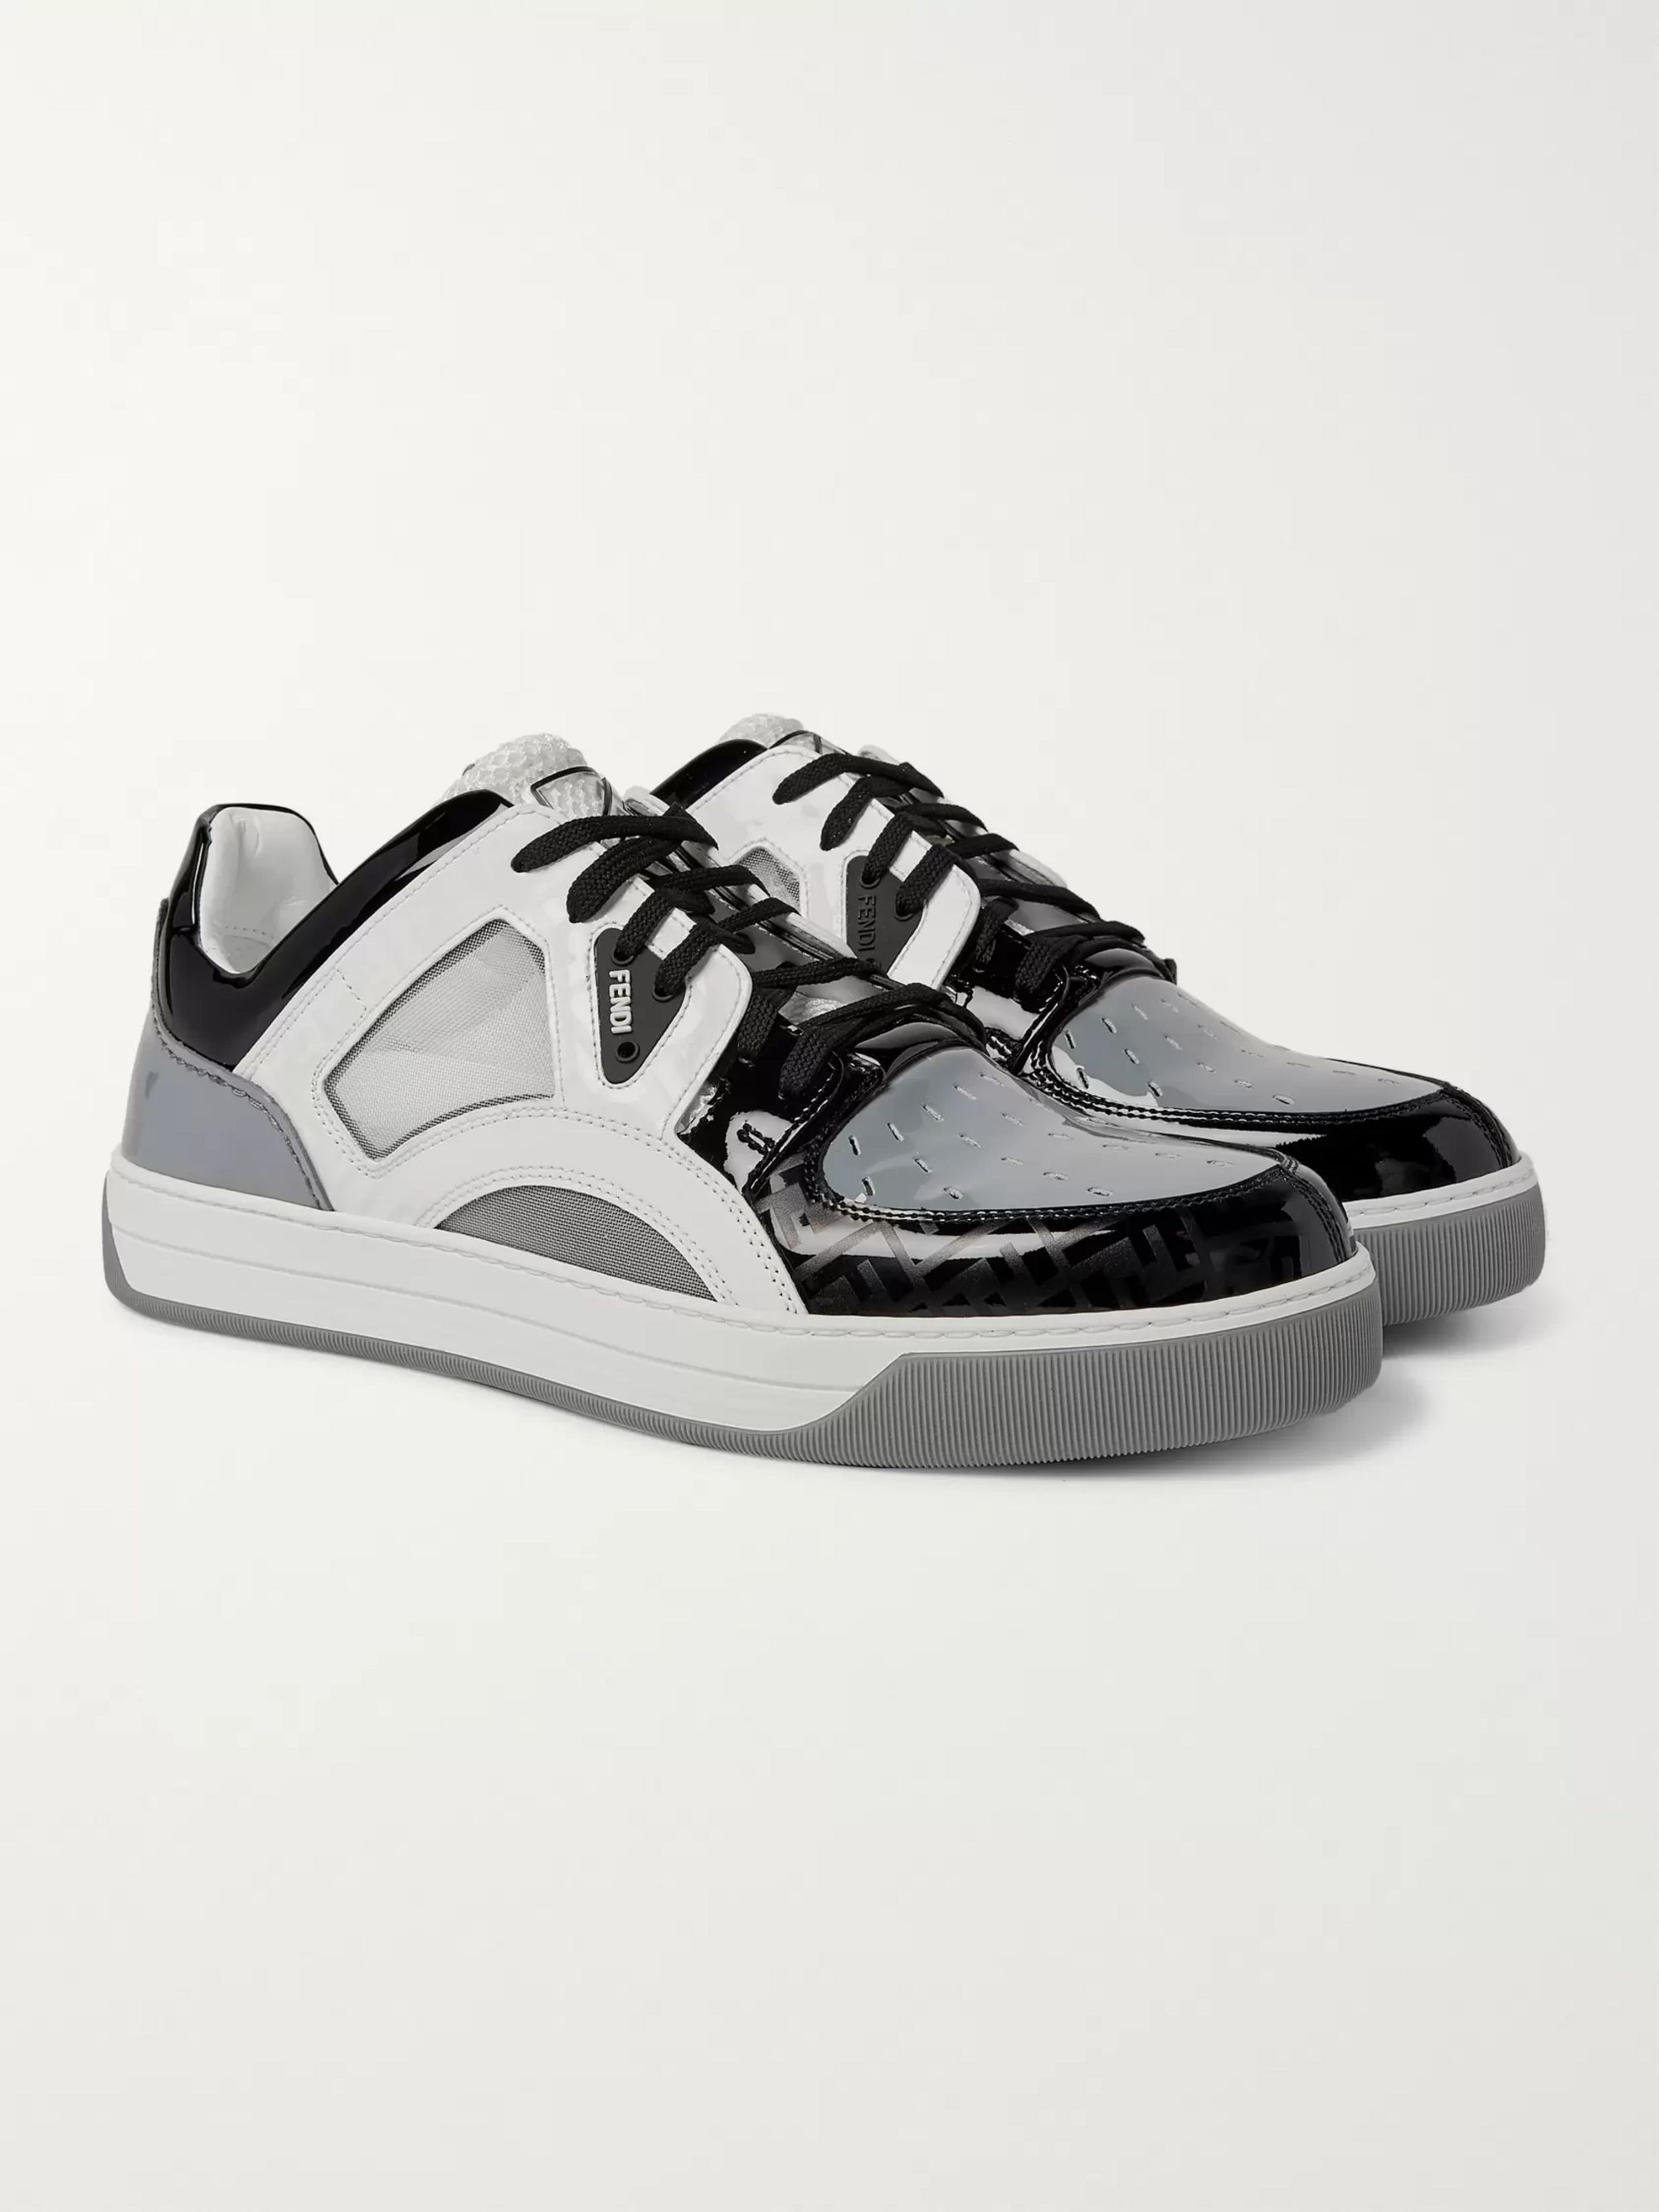 Fendi Patent-Leather and Mesh Sneakers